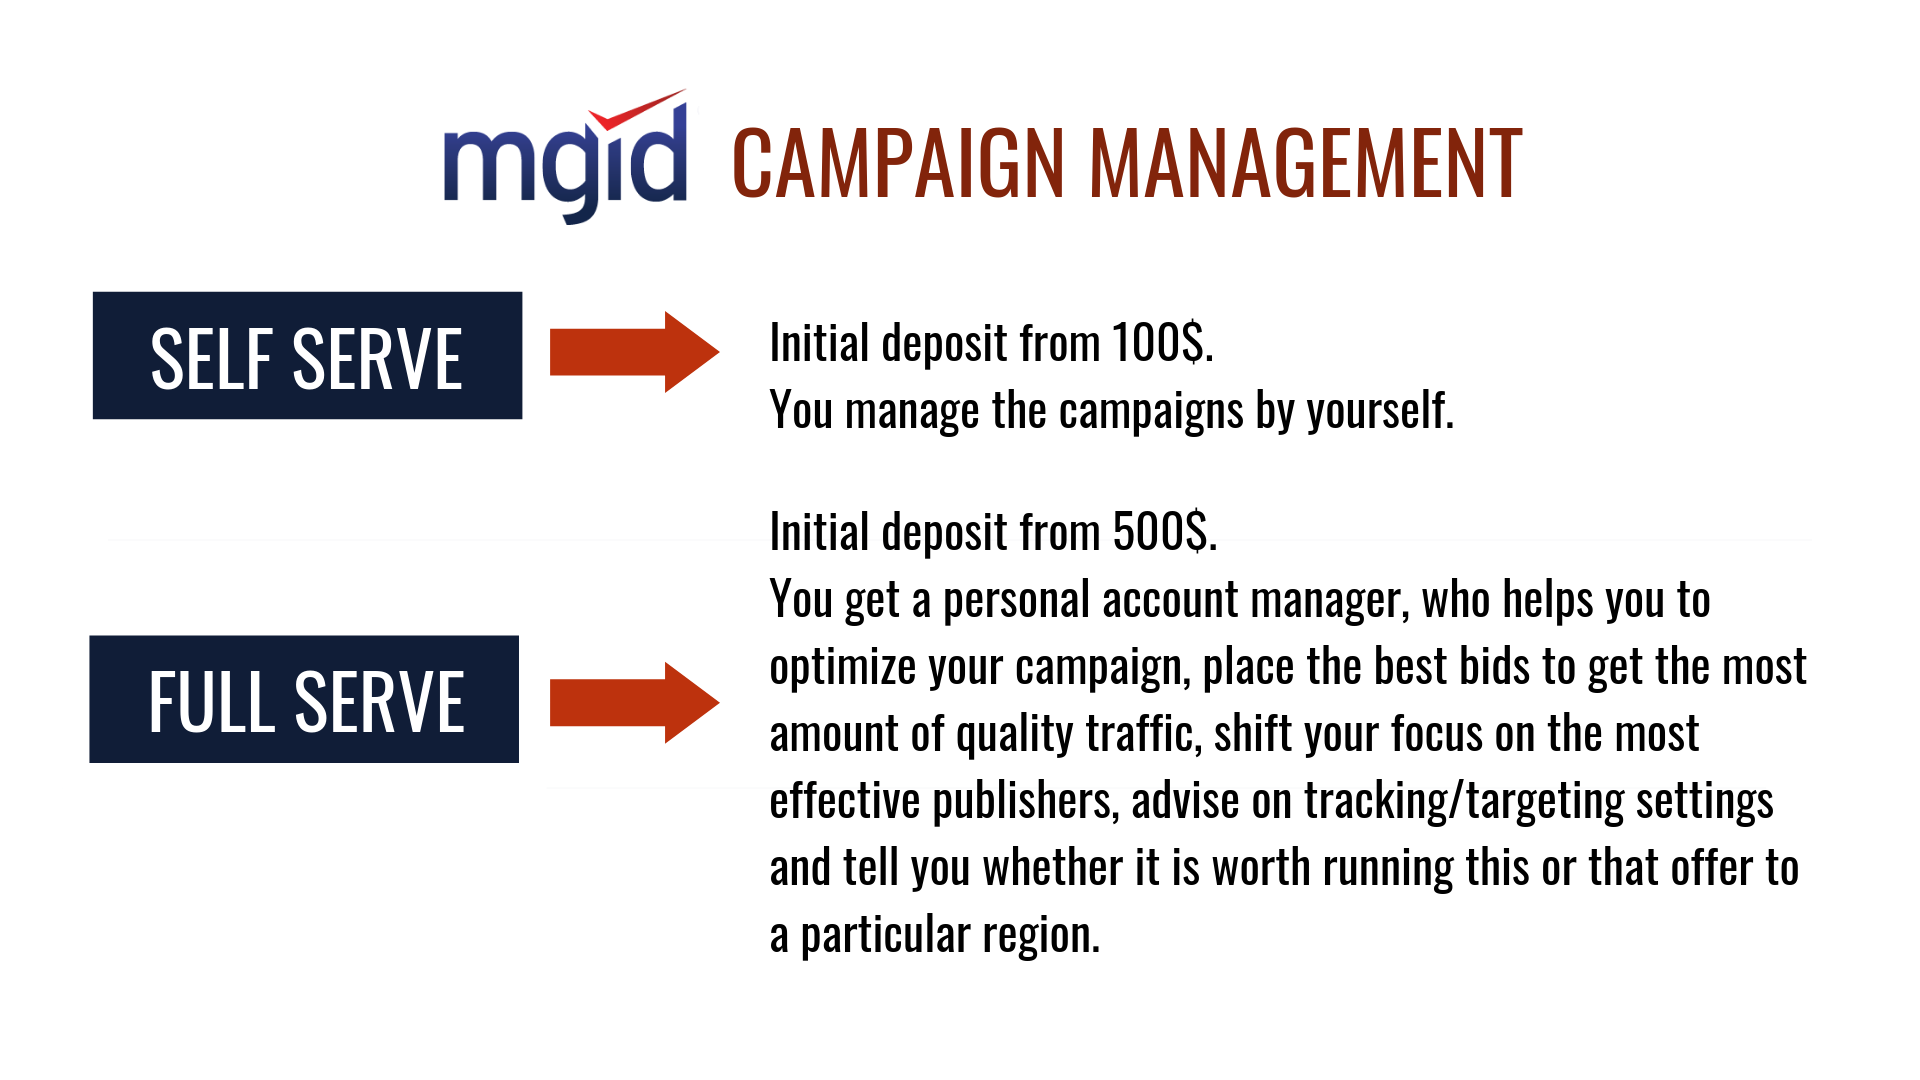 mgid-campaign-management-png.2729